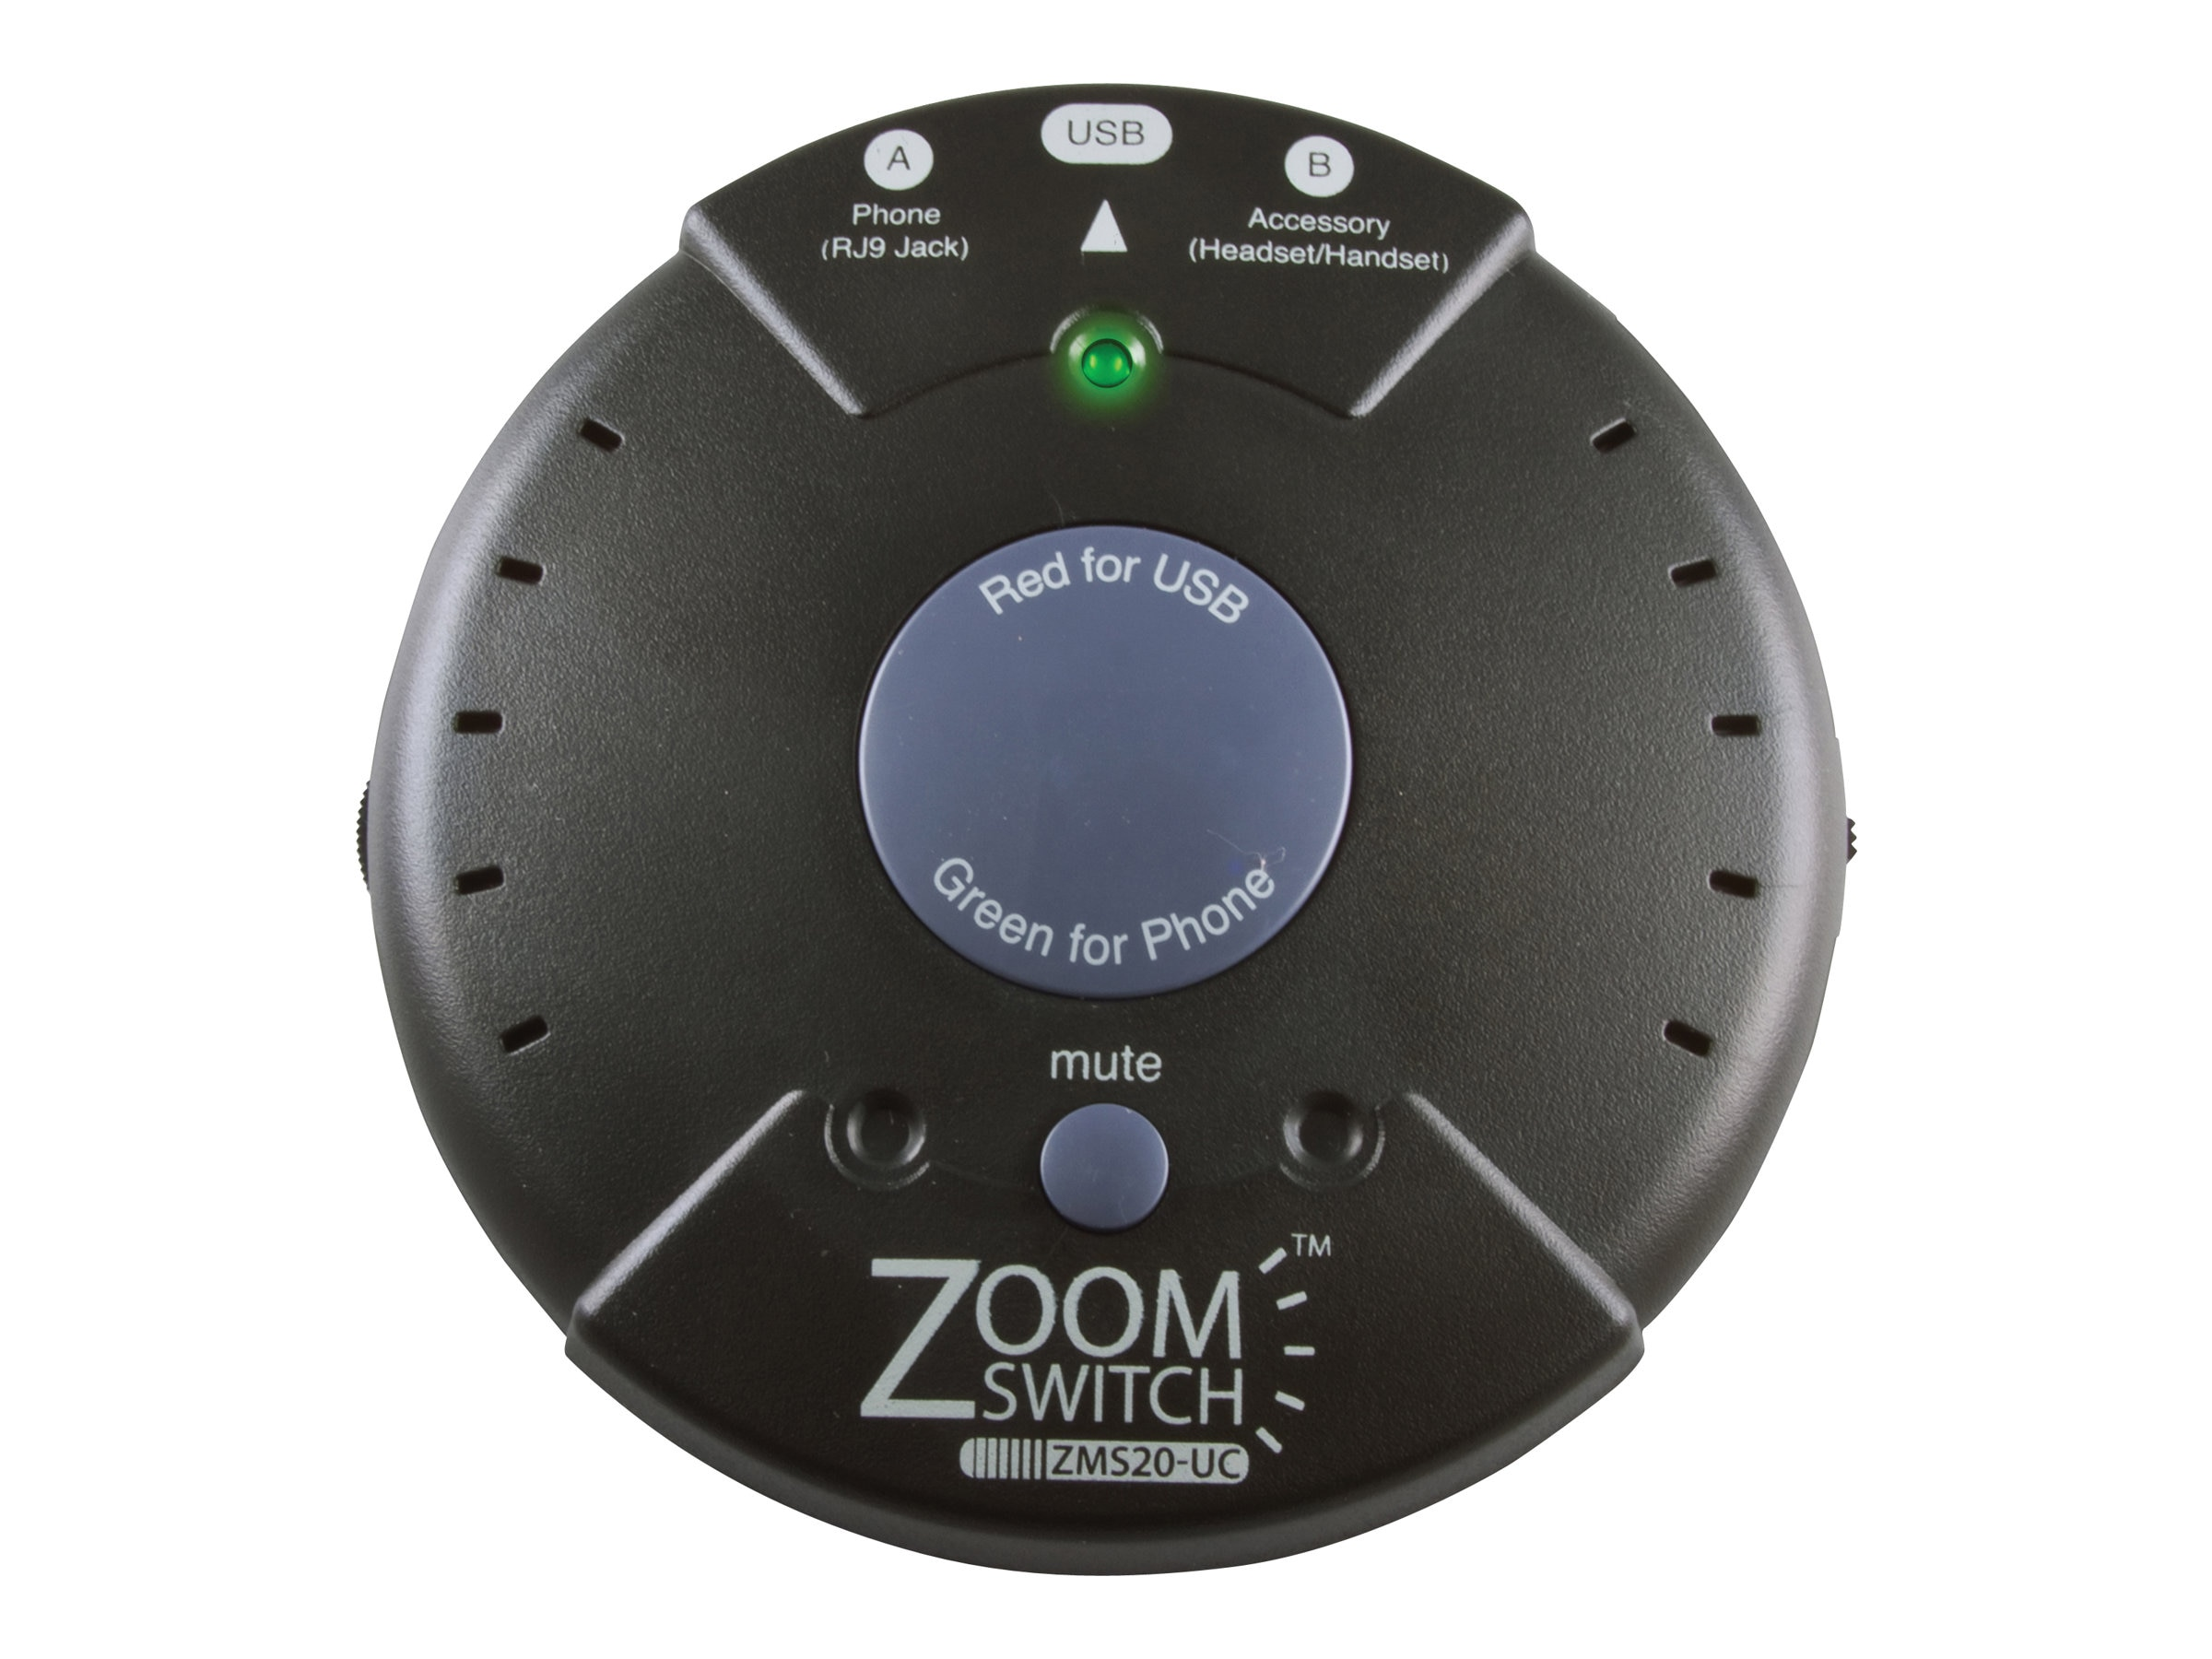 Zoom ZoomSwitch ZMS20-UC, ZMS20-UC, 15097503, Network Adapter Accessories